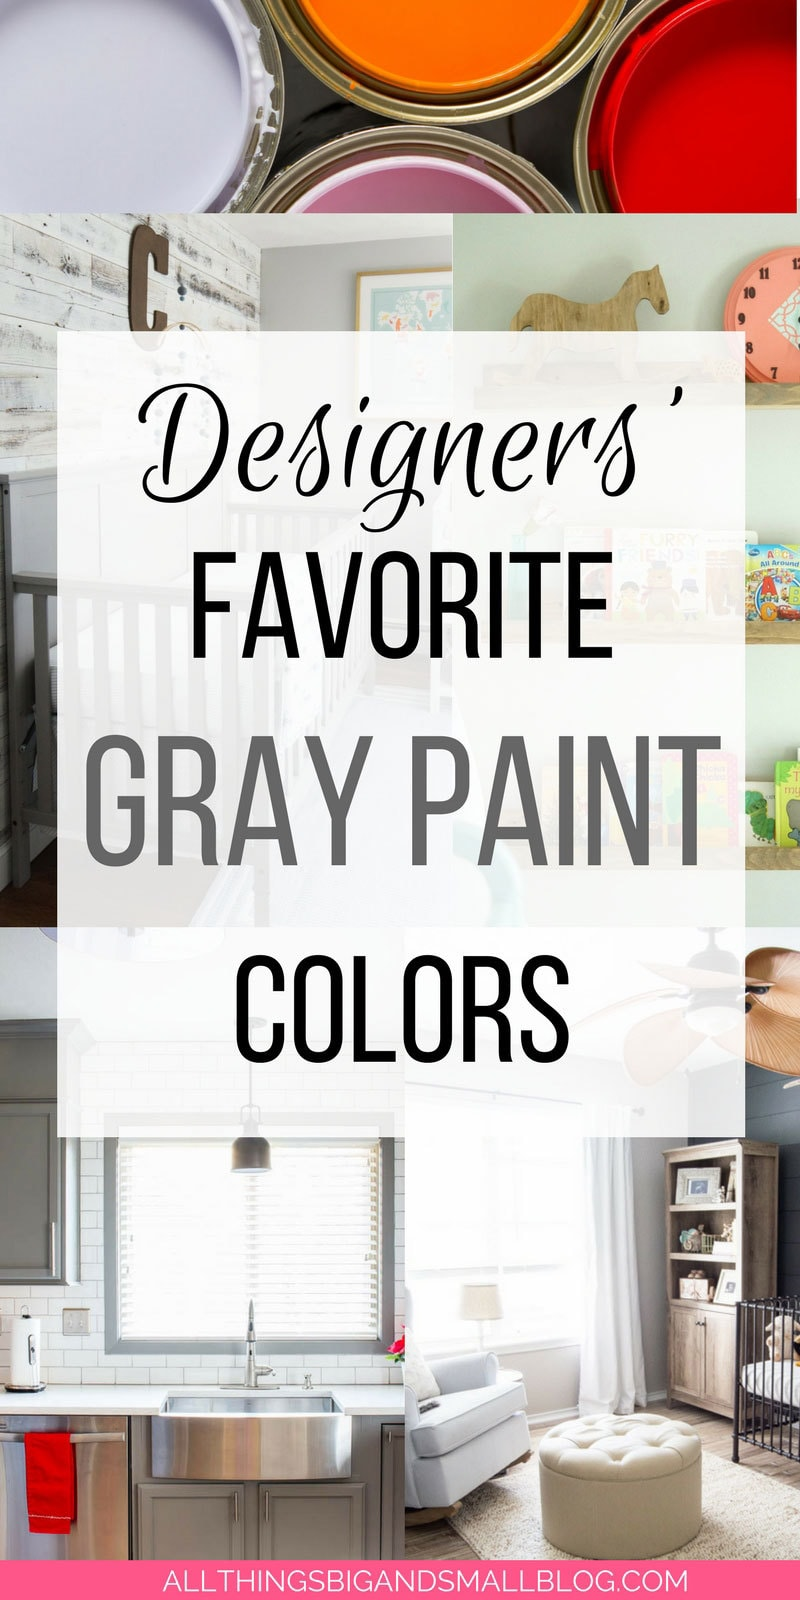 the best grey paint colors for your home | ALL THINGS BIG AND SMALL